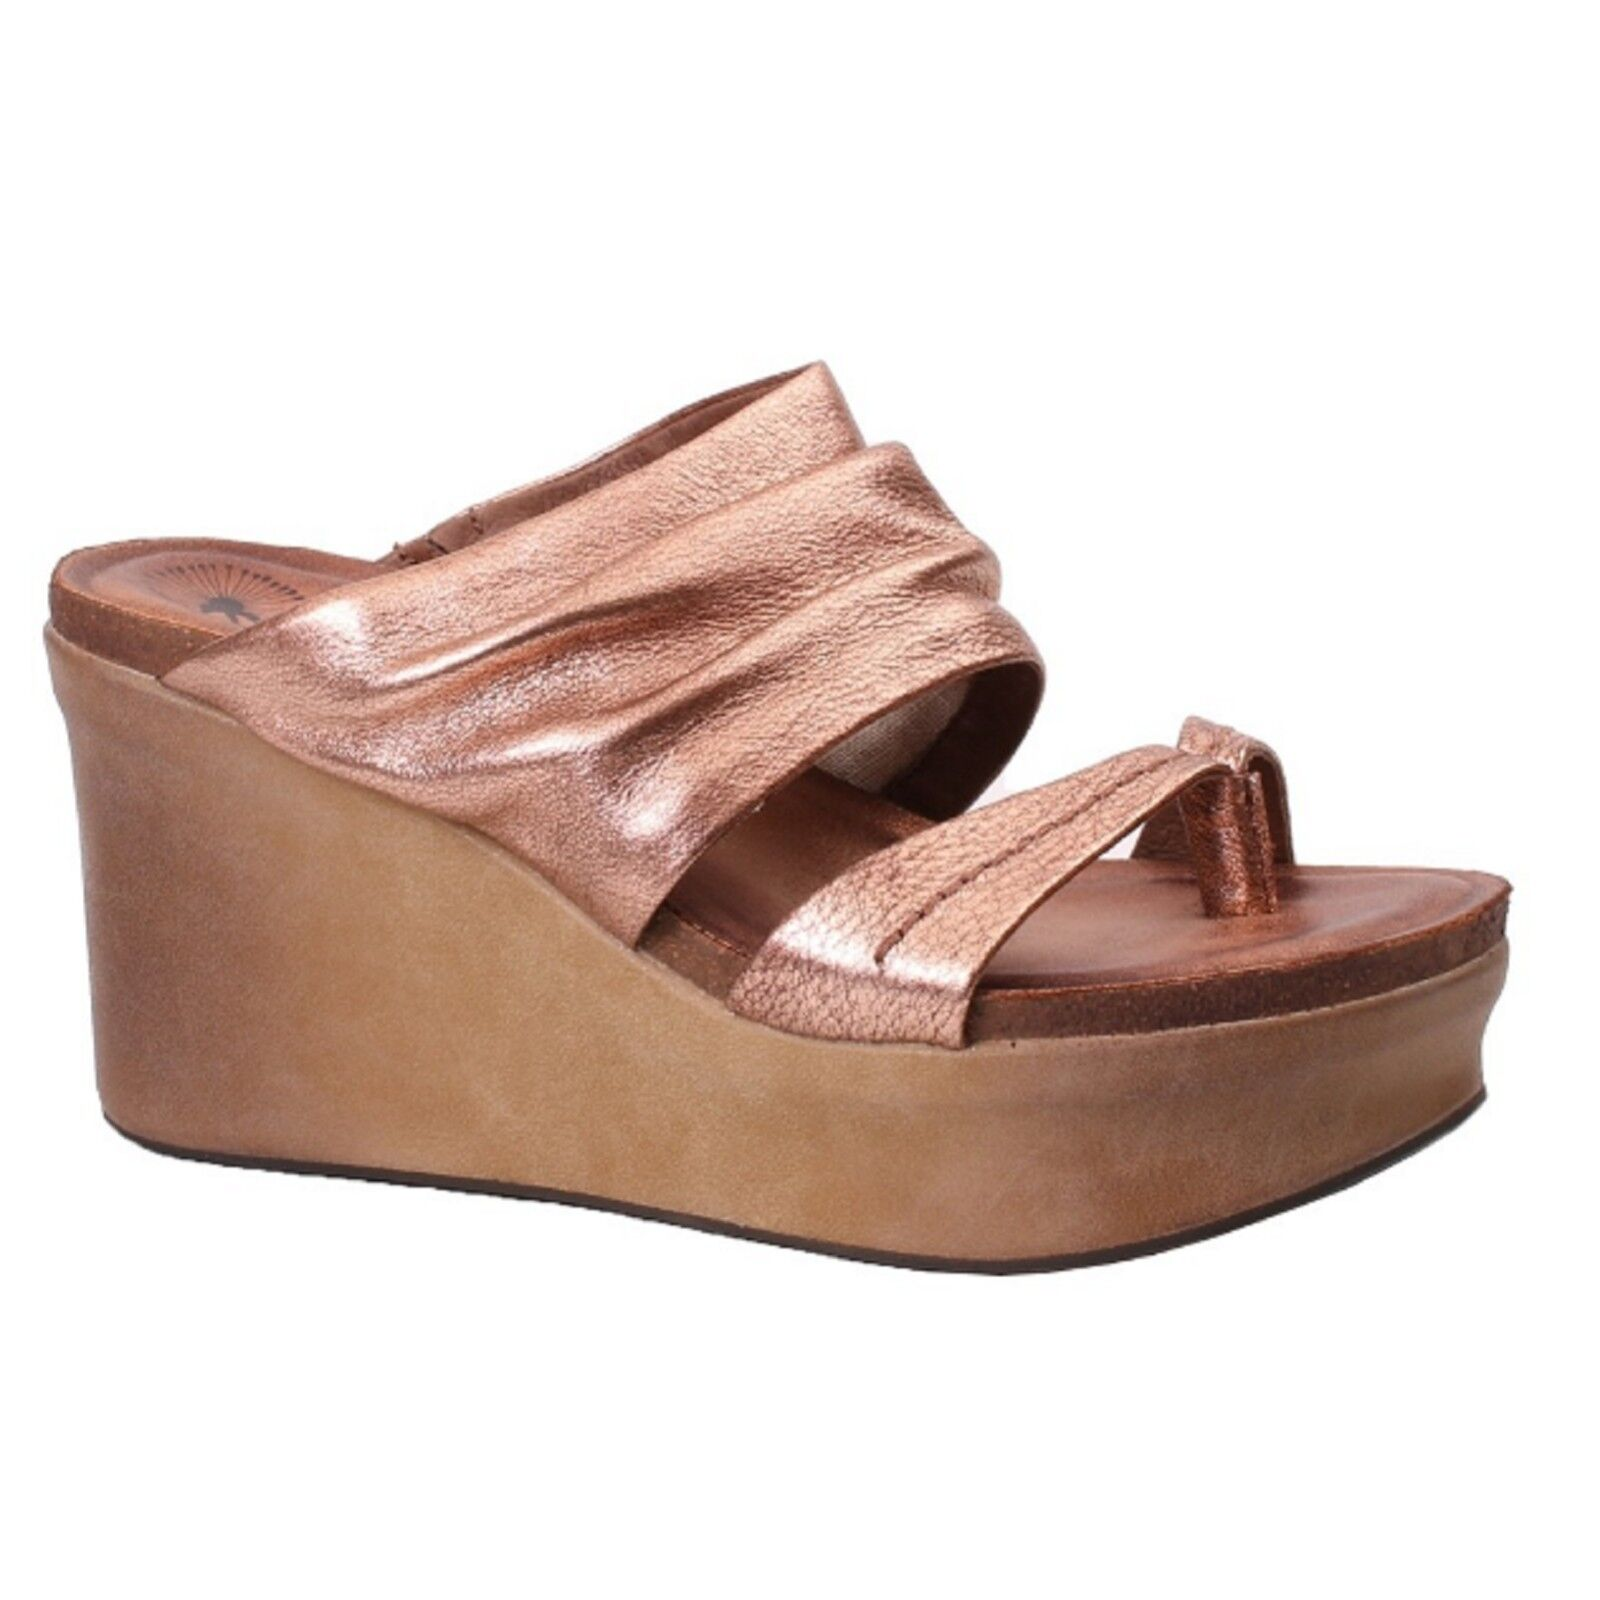 Women's Women's Women's OTBT TAILGATE Copper Wedge Heel Sandal shoes 5adc04